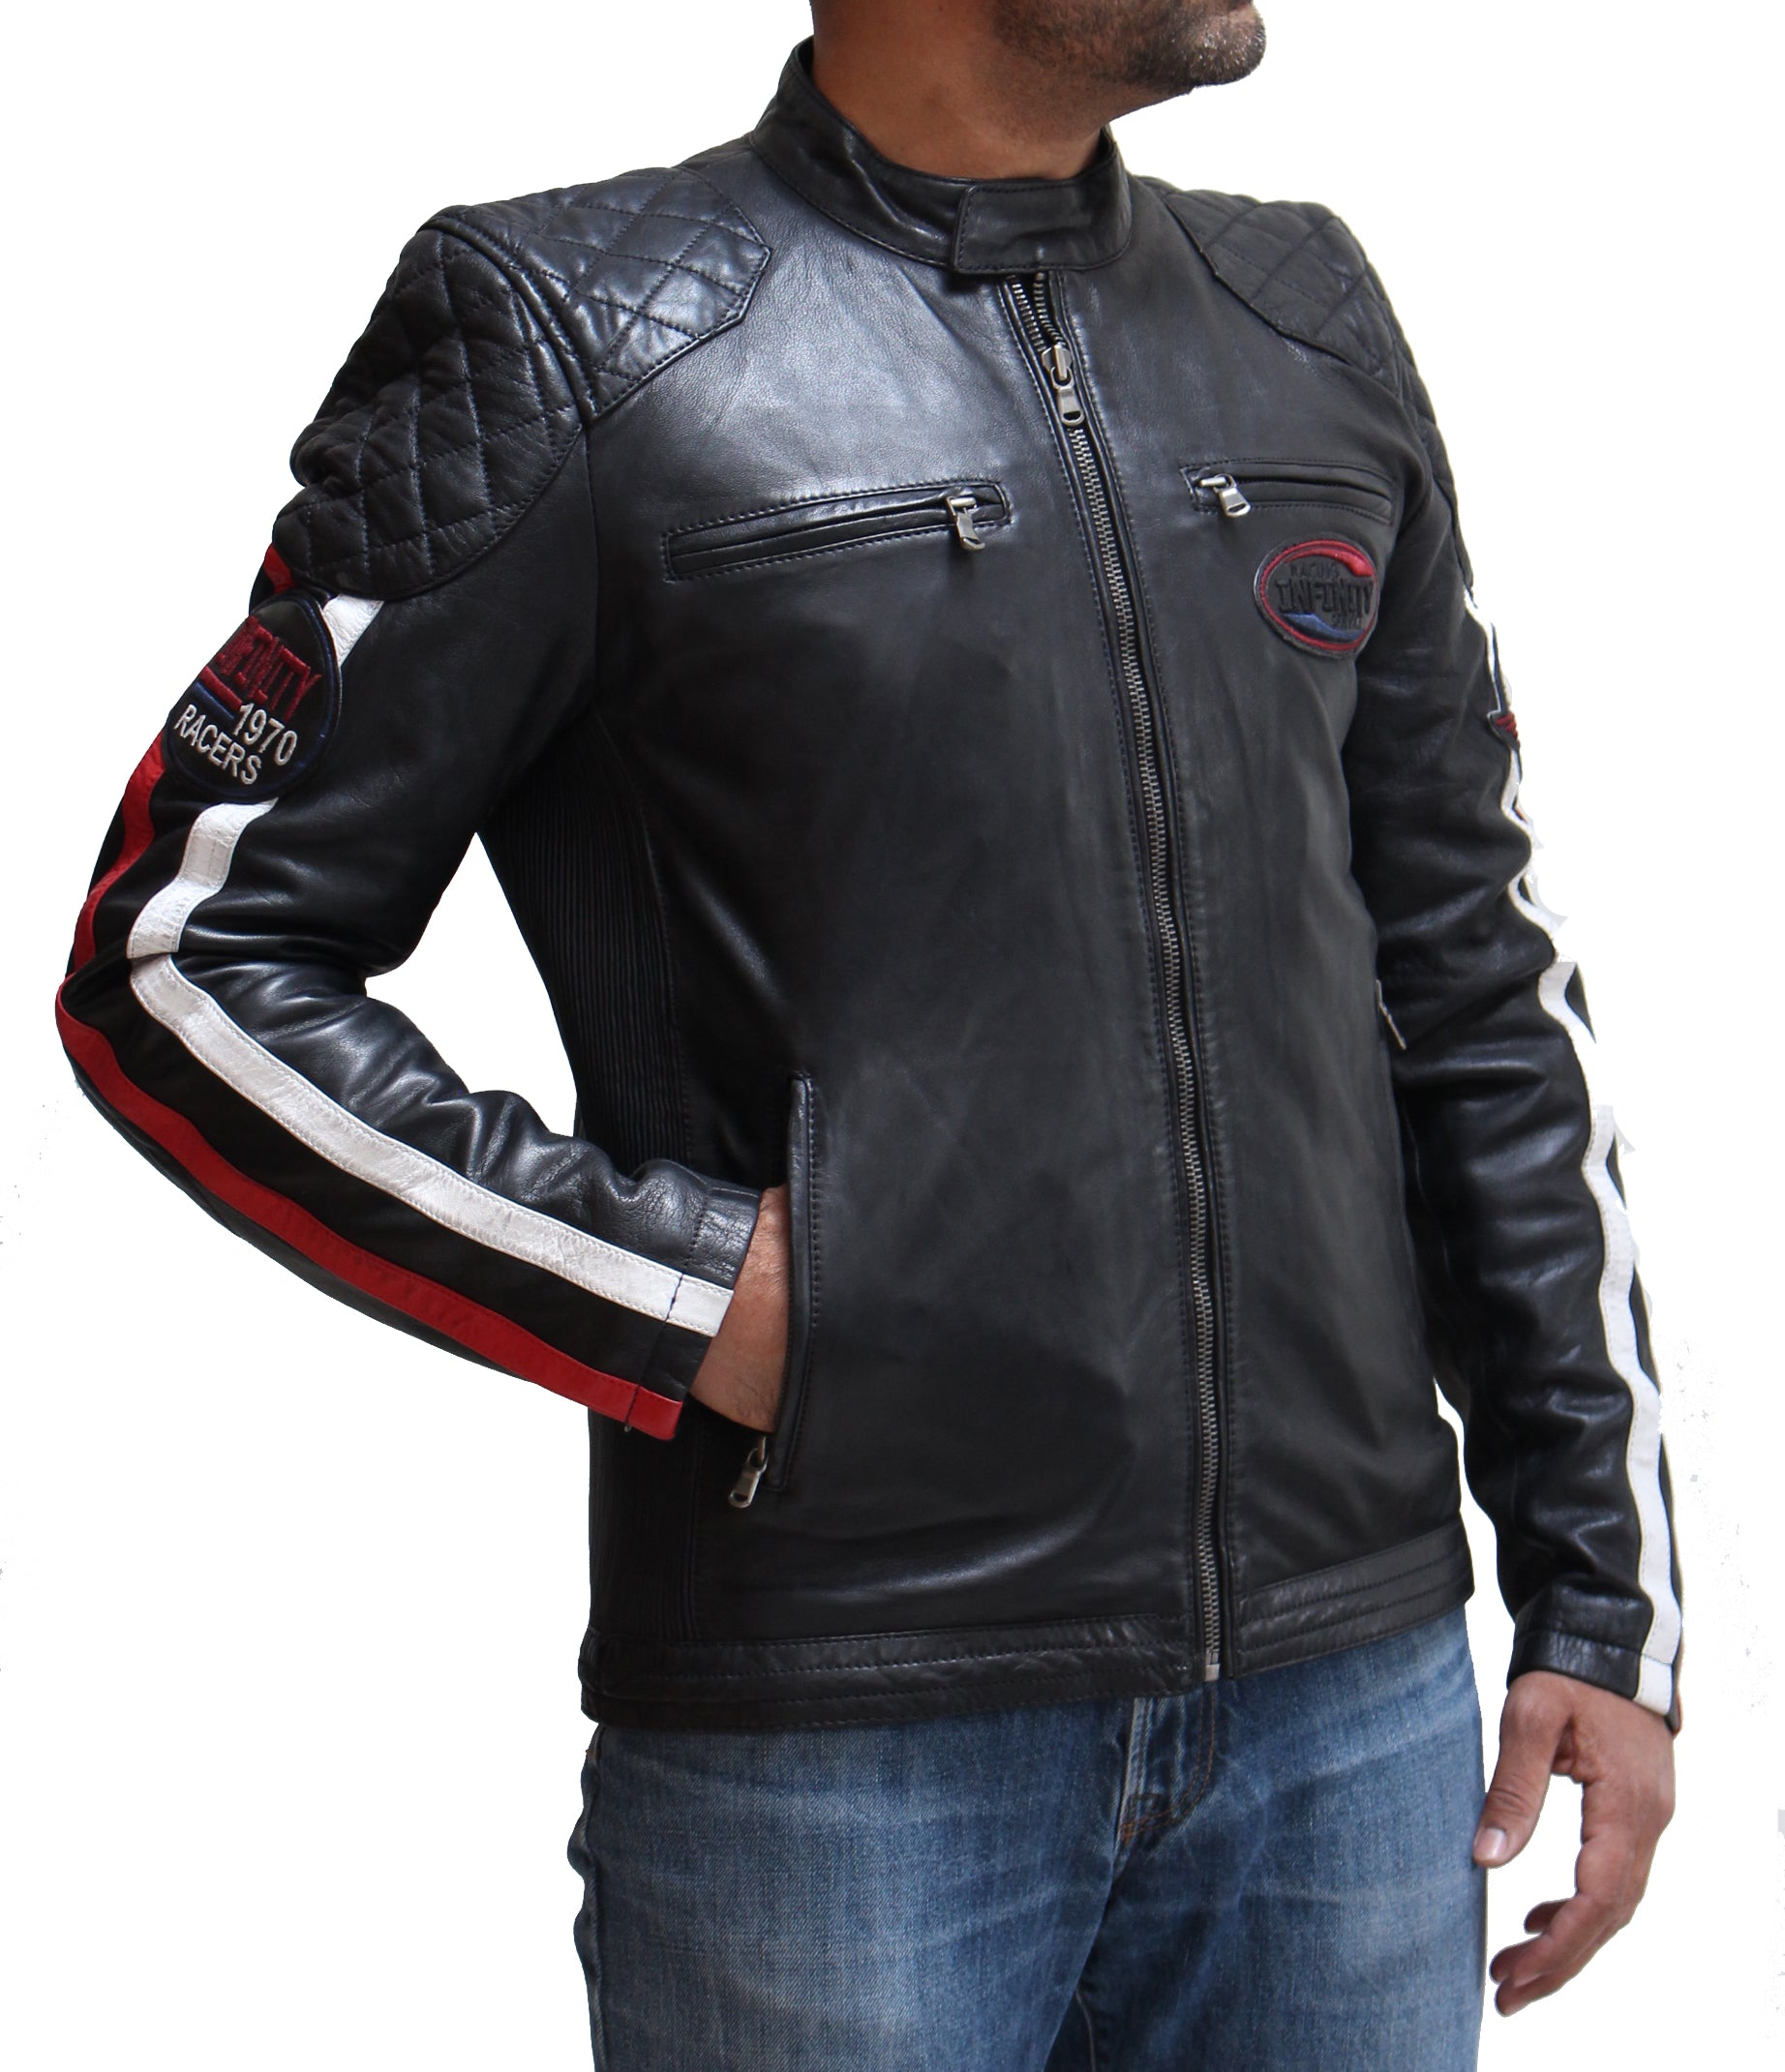 Mens Quilted Racing Leather Jacket with White and red Stripes. Available in Black, Blue and Tan